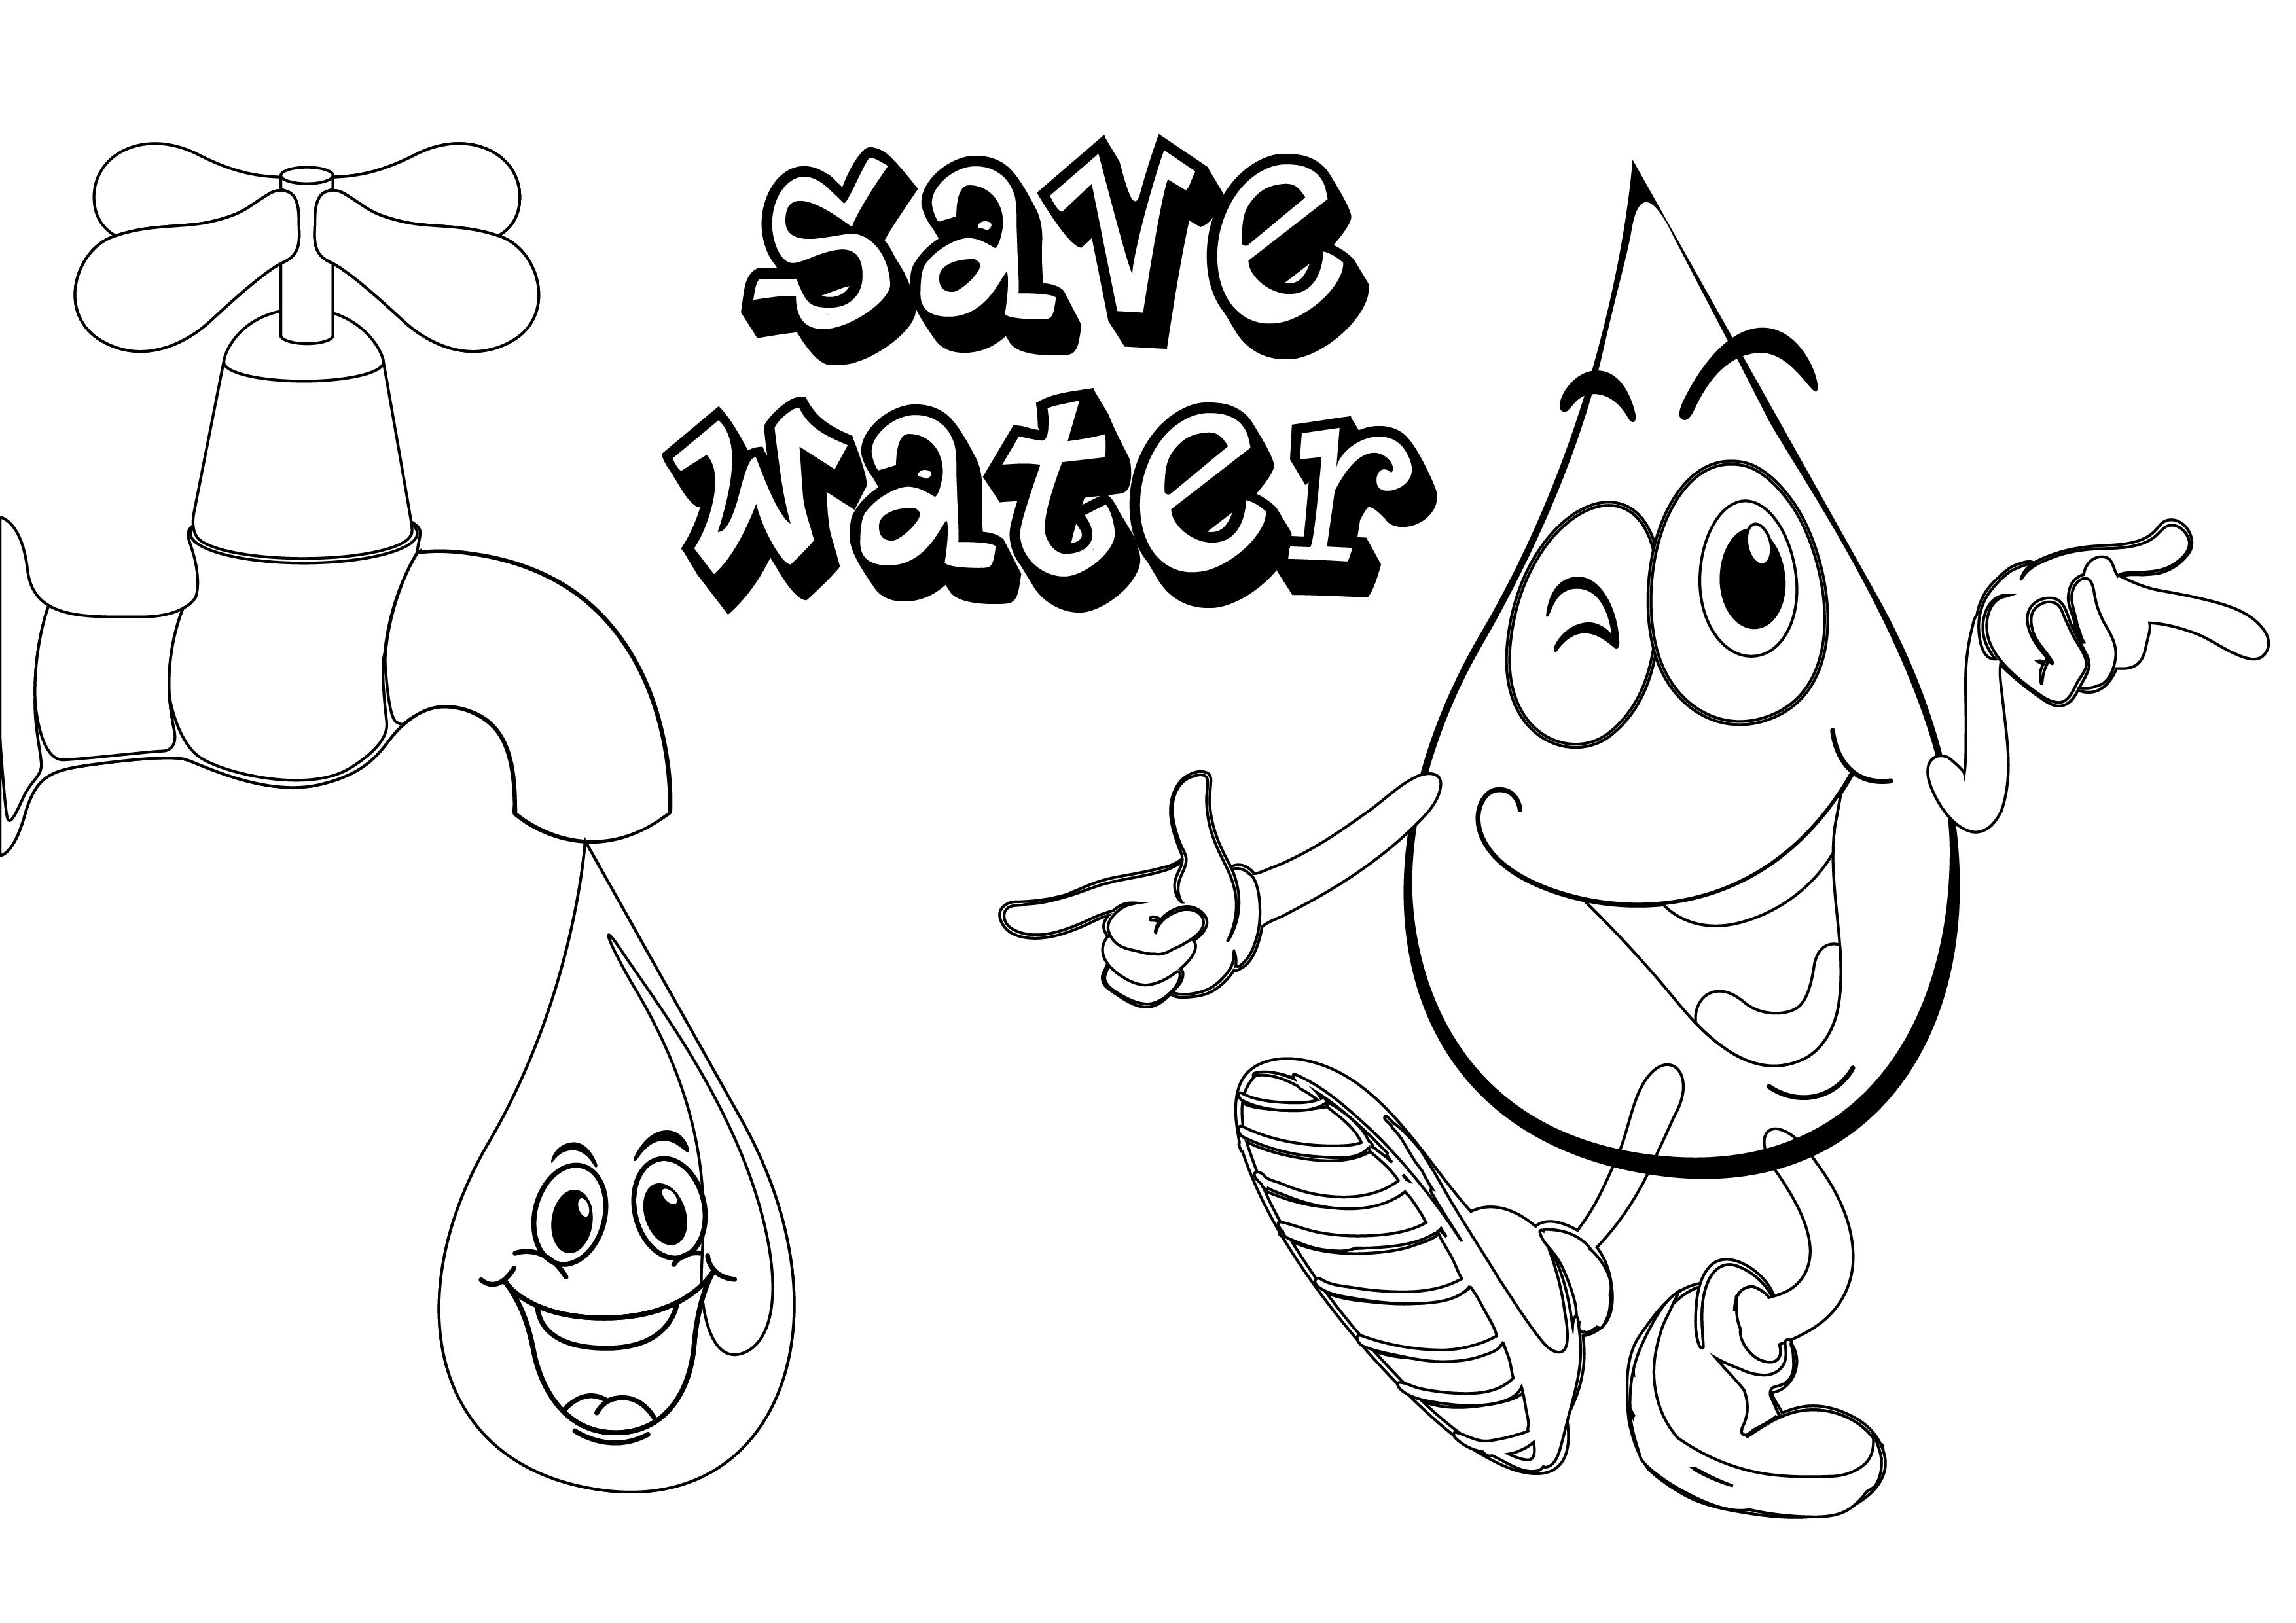 water coloring images water coloring pages to download and print for free images coloring water 1 1